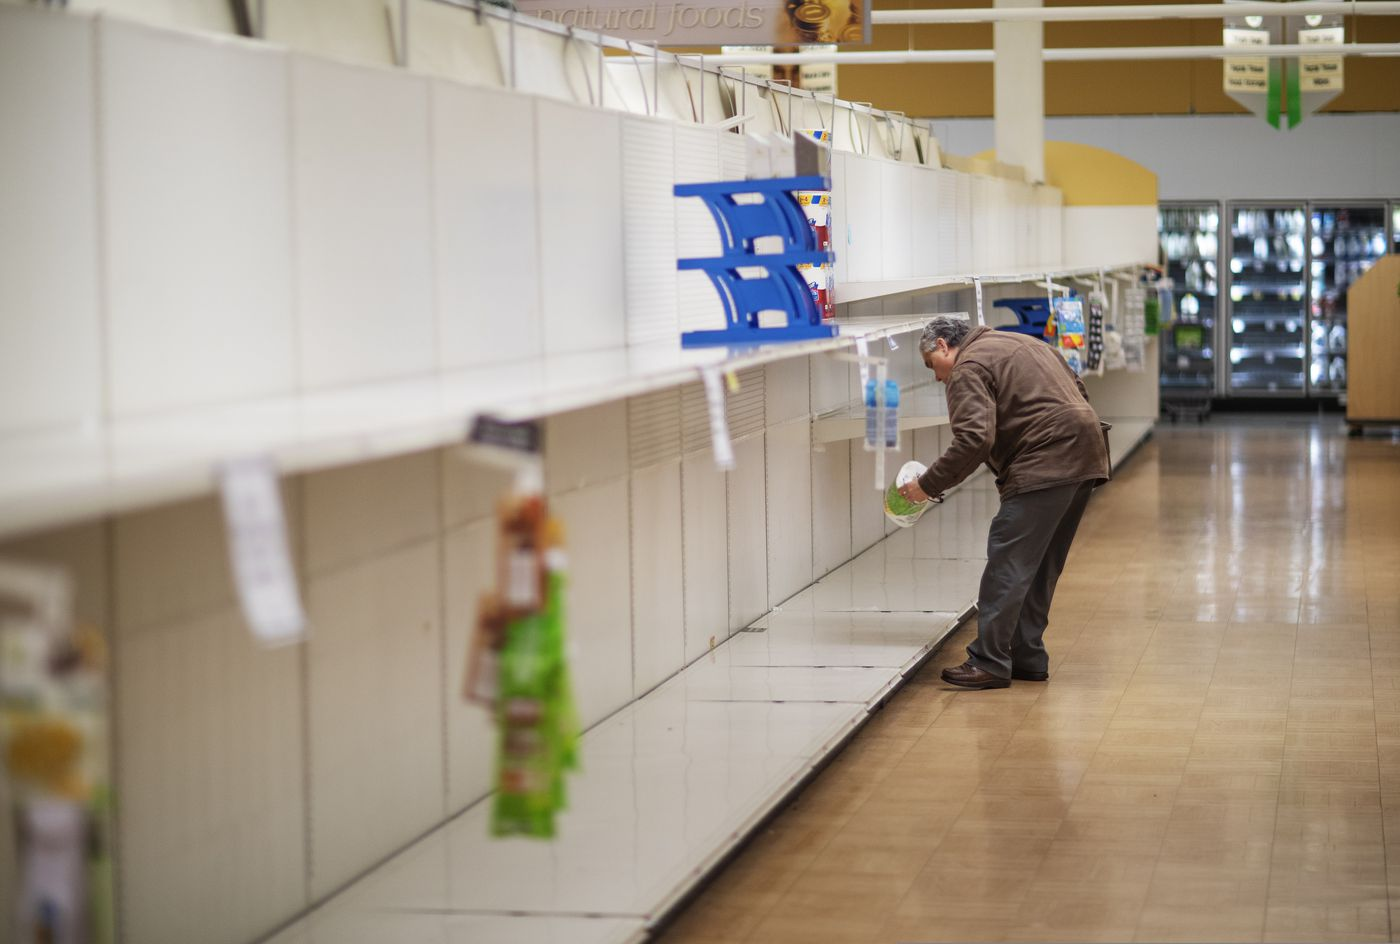 FILE - In this March 19, 2020 file photo, Wade Warner picks up a toilet paper roll at a Stop & Shop supermarket during hours open daily only for seniors in North Providence, R.I. (AP Photo/David Goldman)